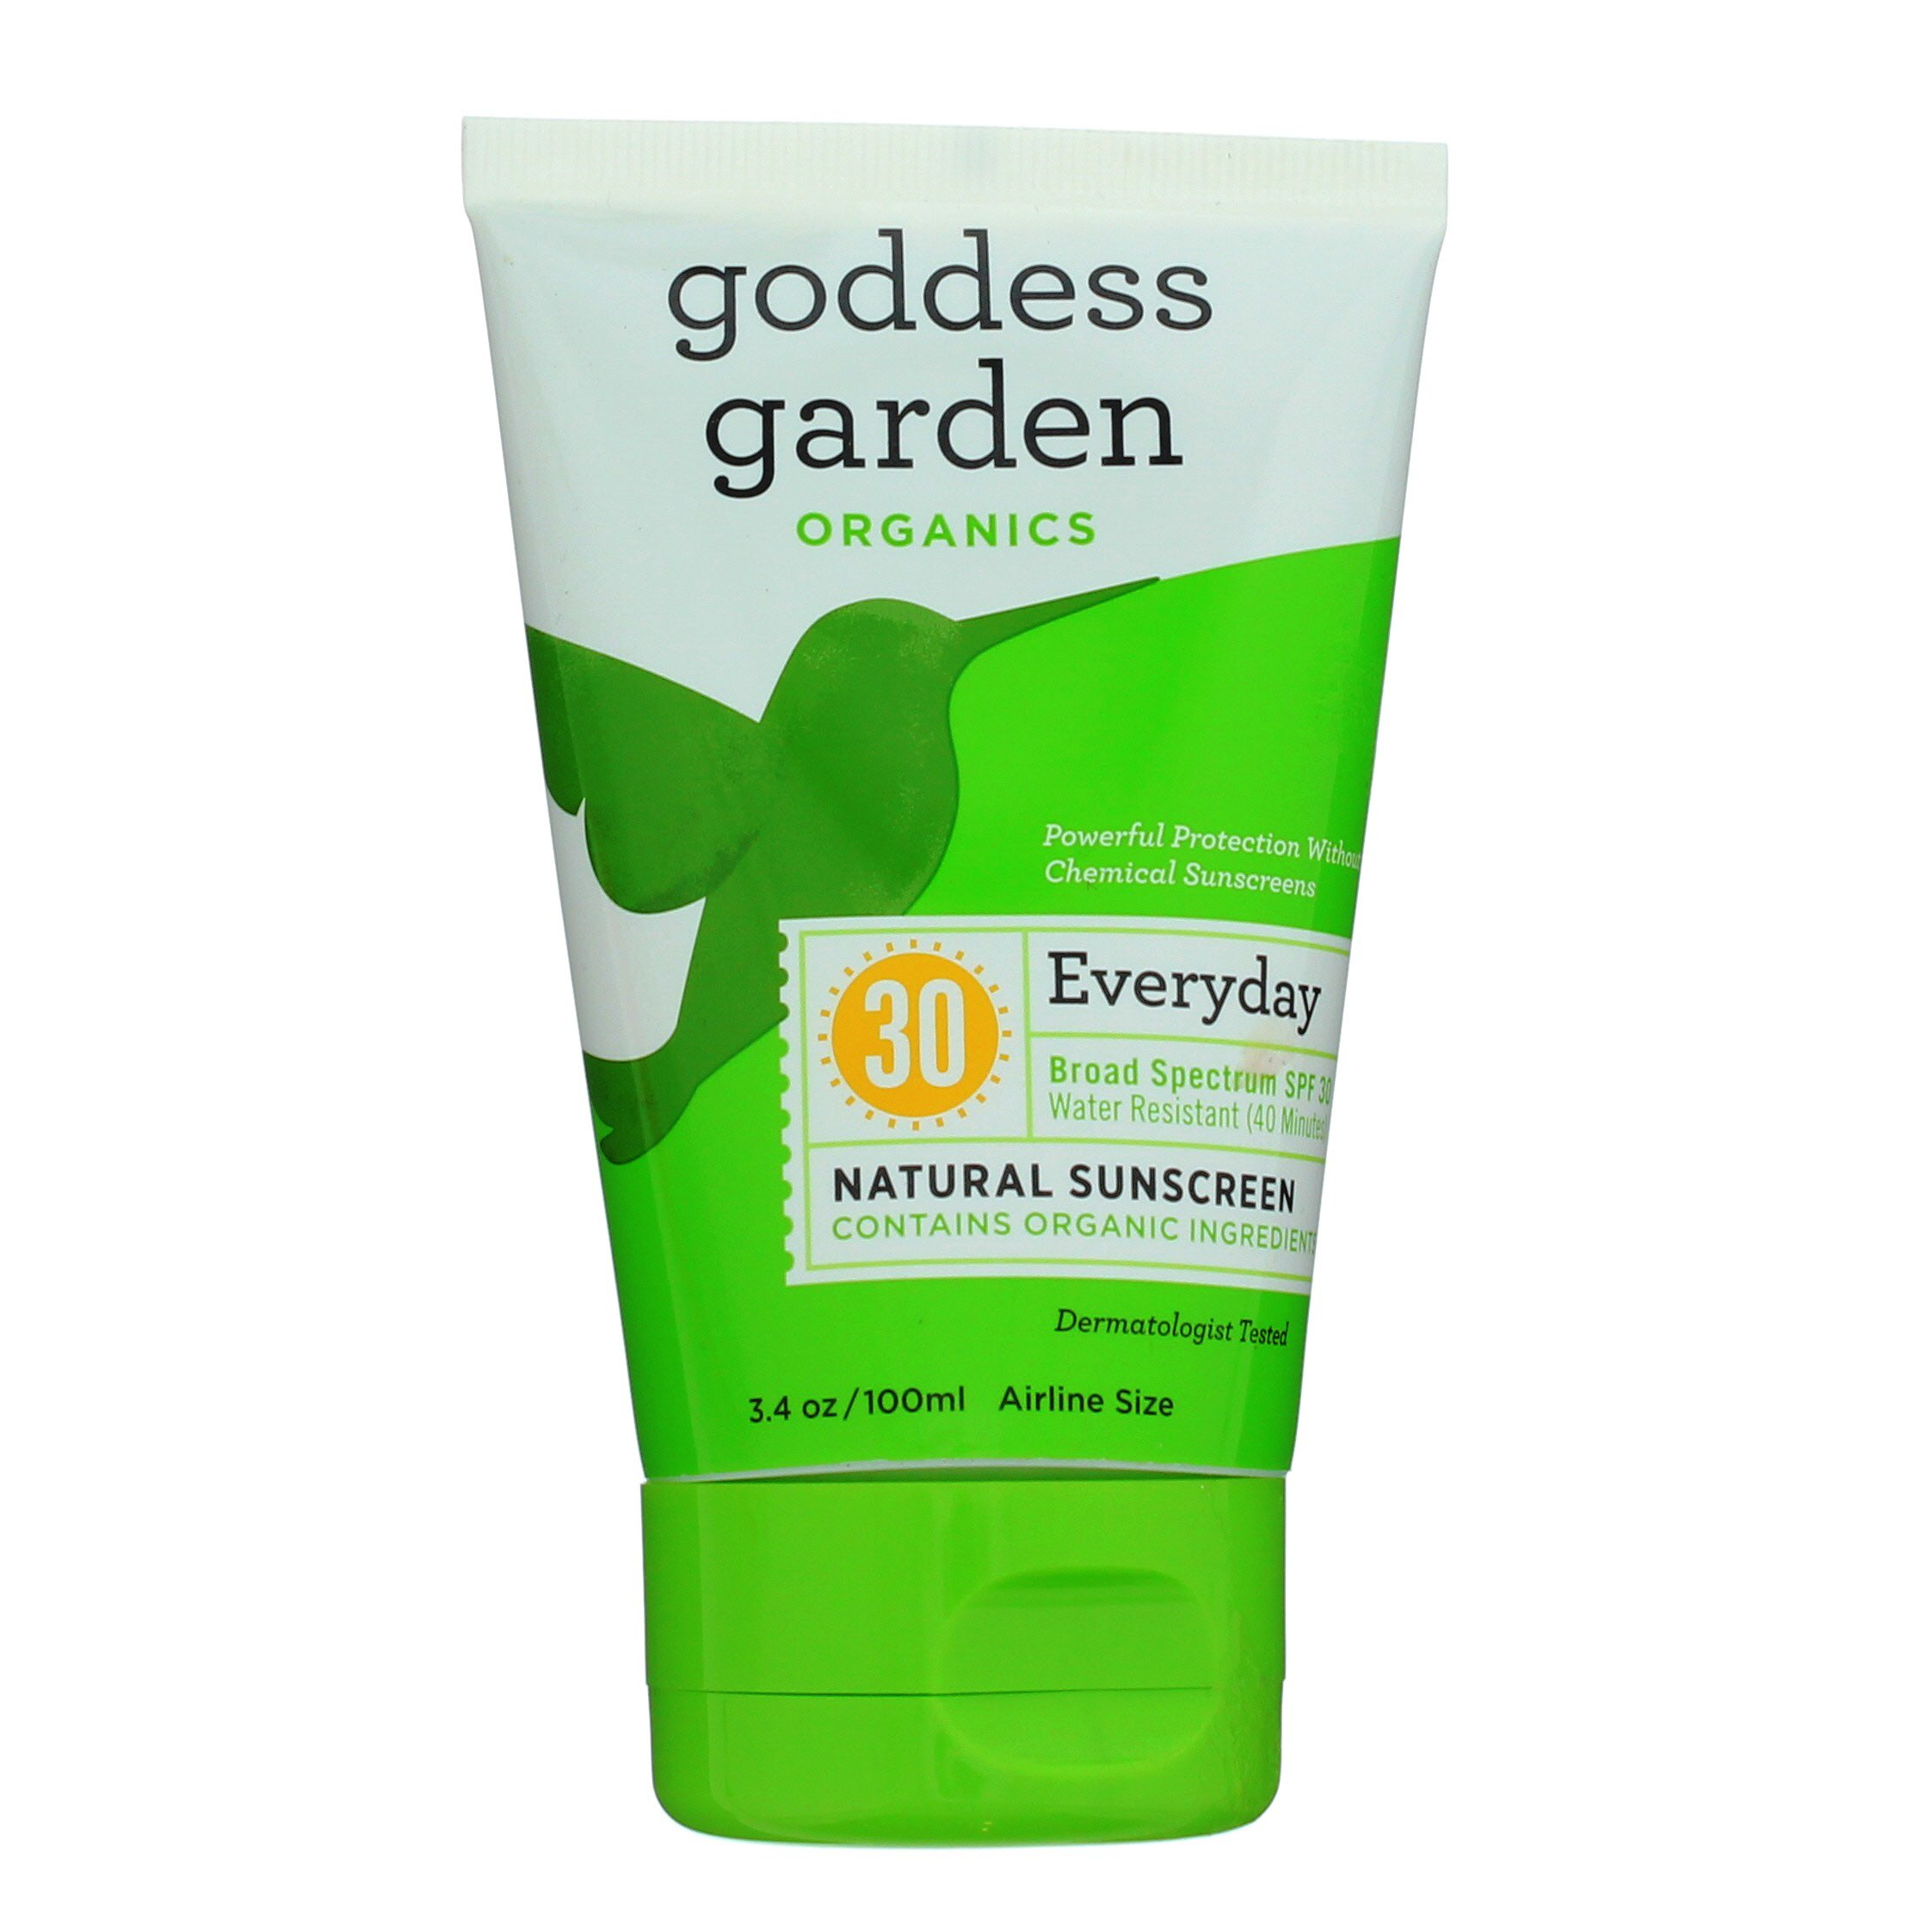 made days product awesome am to verdict sun apply so daily effort glad the sunscreen get protection fit is goddess of img i an with conscious garden and organics